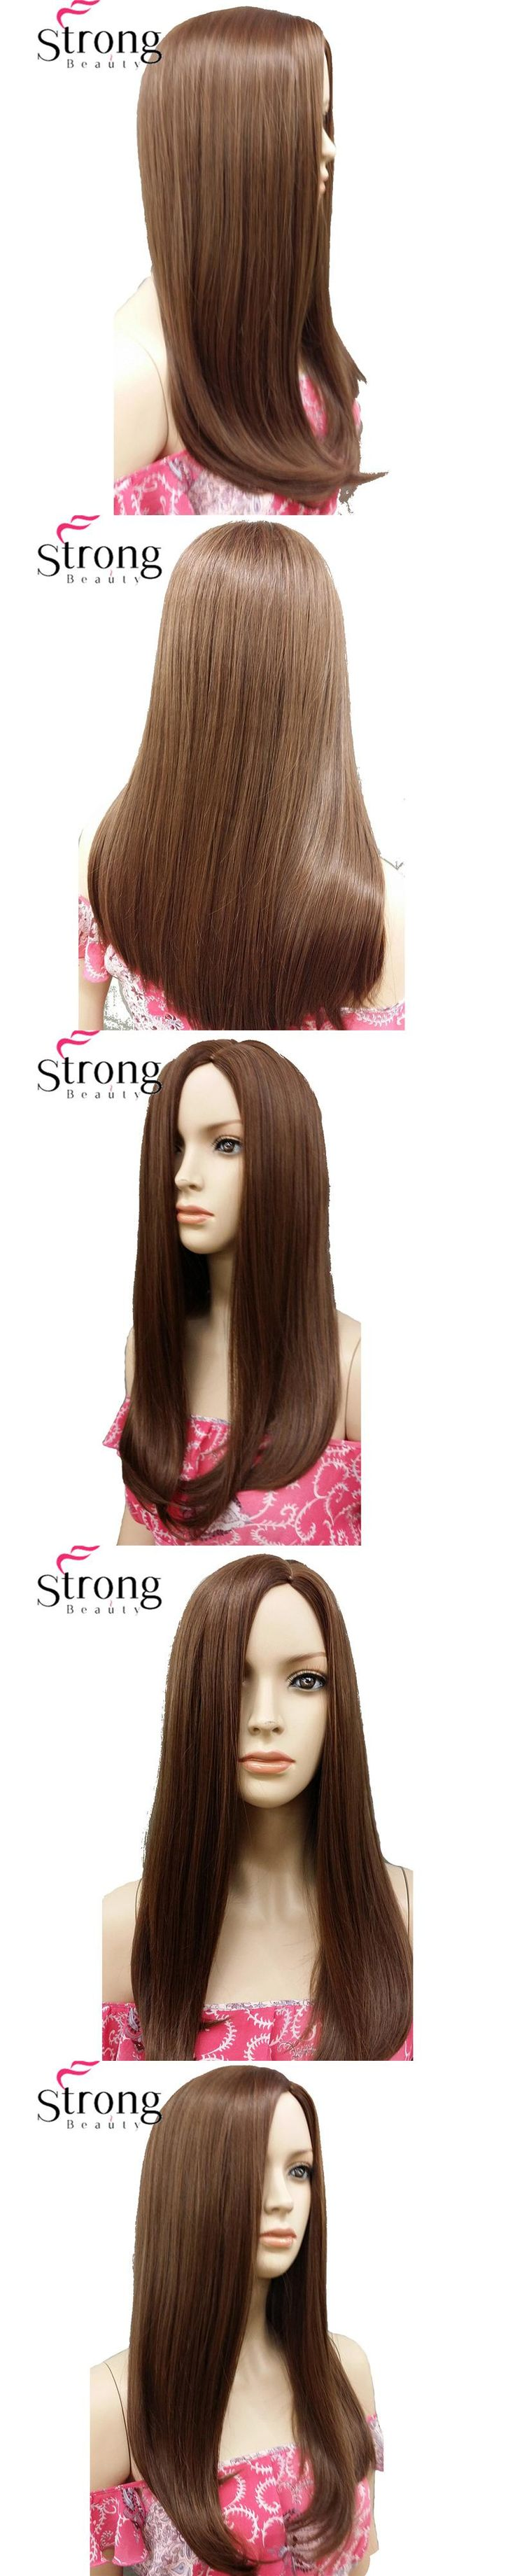 StrongBeauty Light Brown Long Straight Side Part, no Bangs Full Synthetic Wig